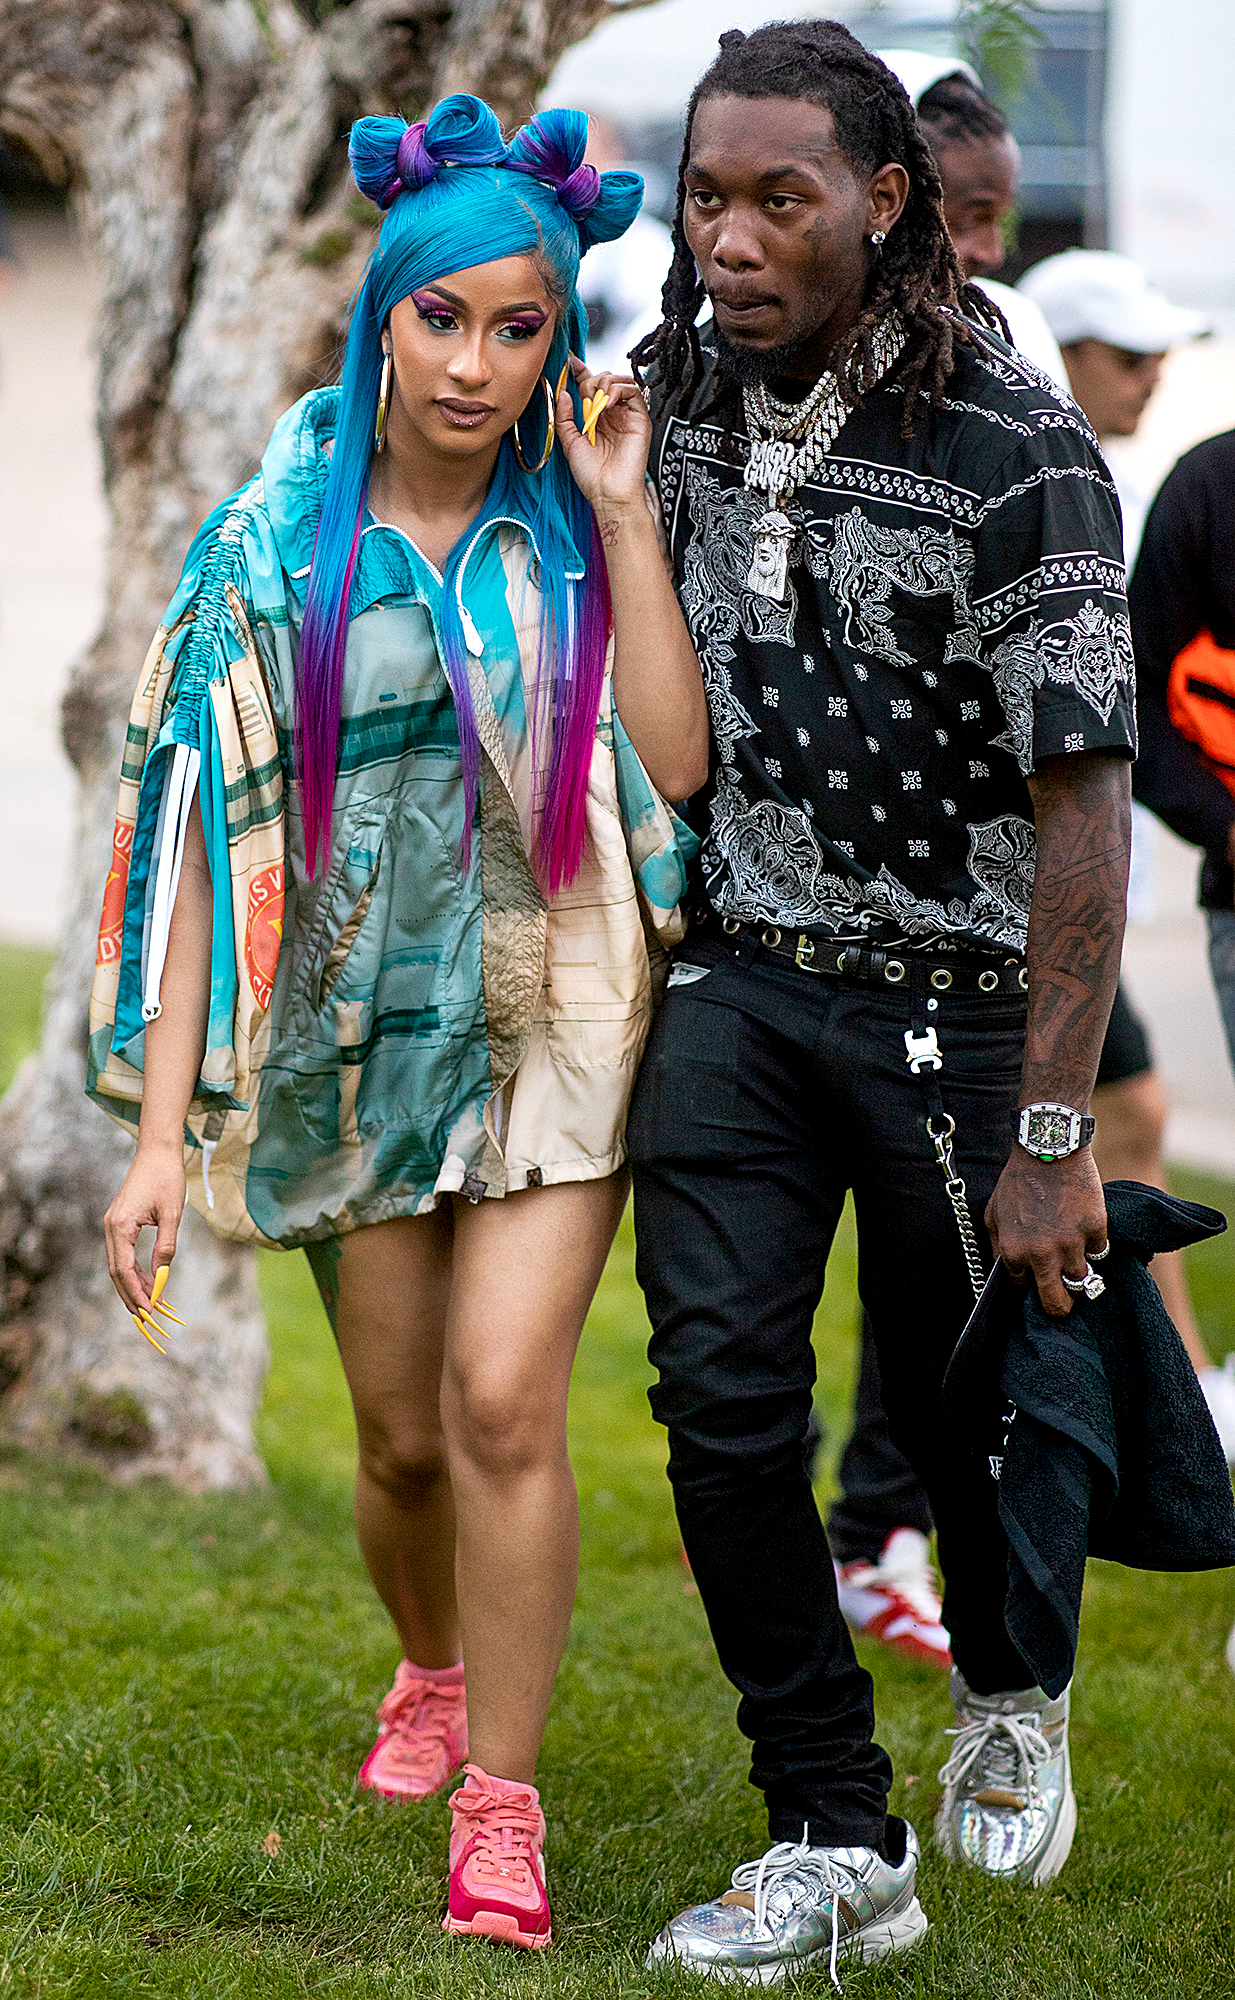 """cardi-b-offset-coachella-pda - The day before their onstage reunion, Offset shared a photo of Cardi at the Swisher Sweets Awards on Saturday, April 13. """"💜❤️💛💚💙MOMMY SHARK IMA EAT YOU 👅👅👅👅😻😻😻,"""" he wrote, referring to the popular children's song """"Baby Shark."""""""